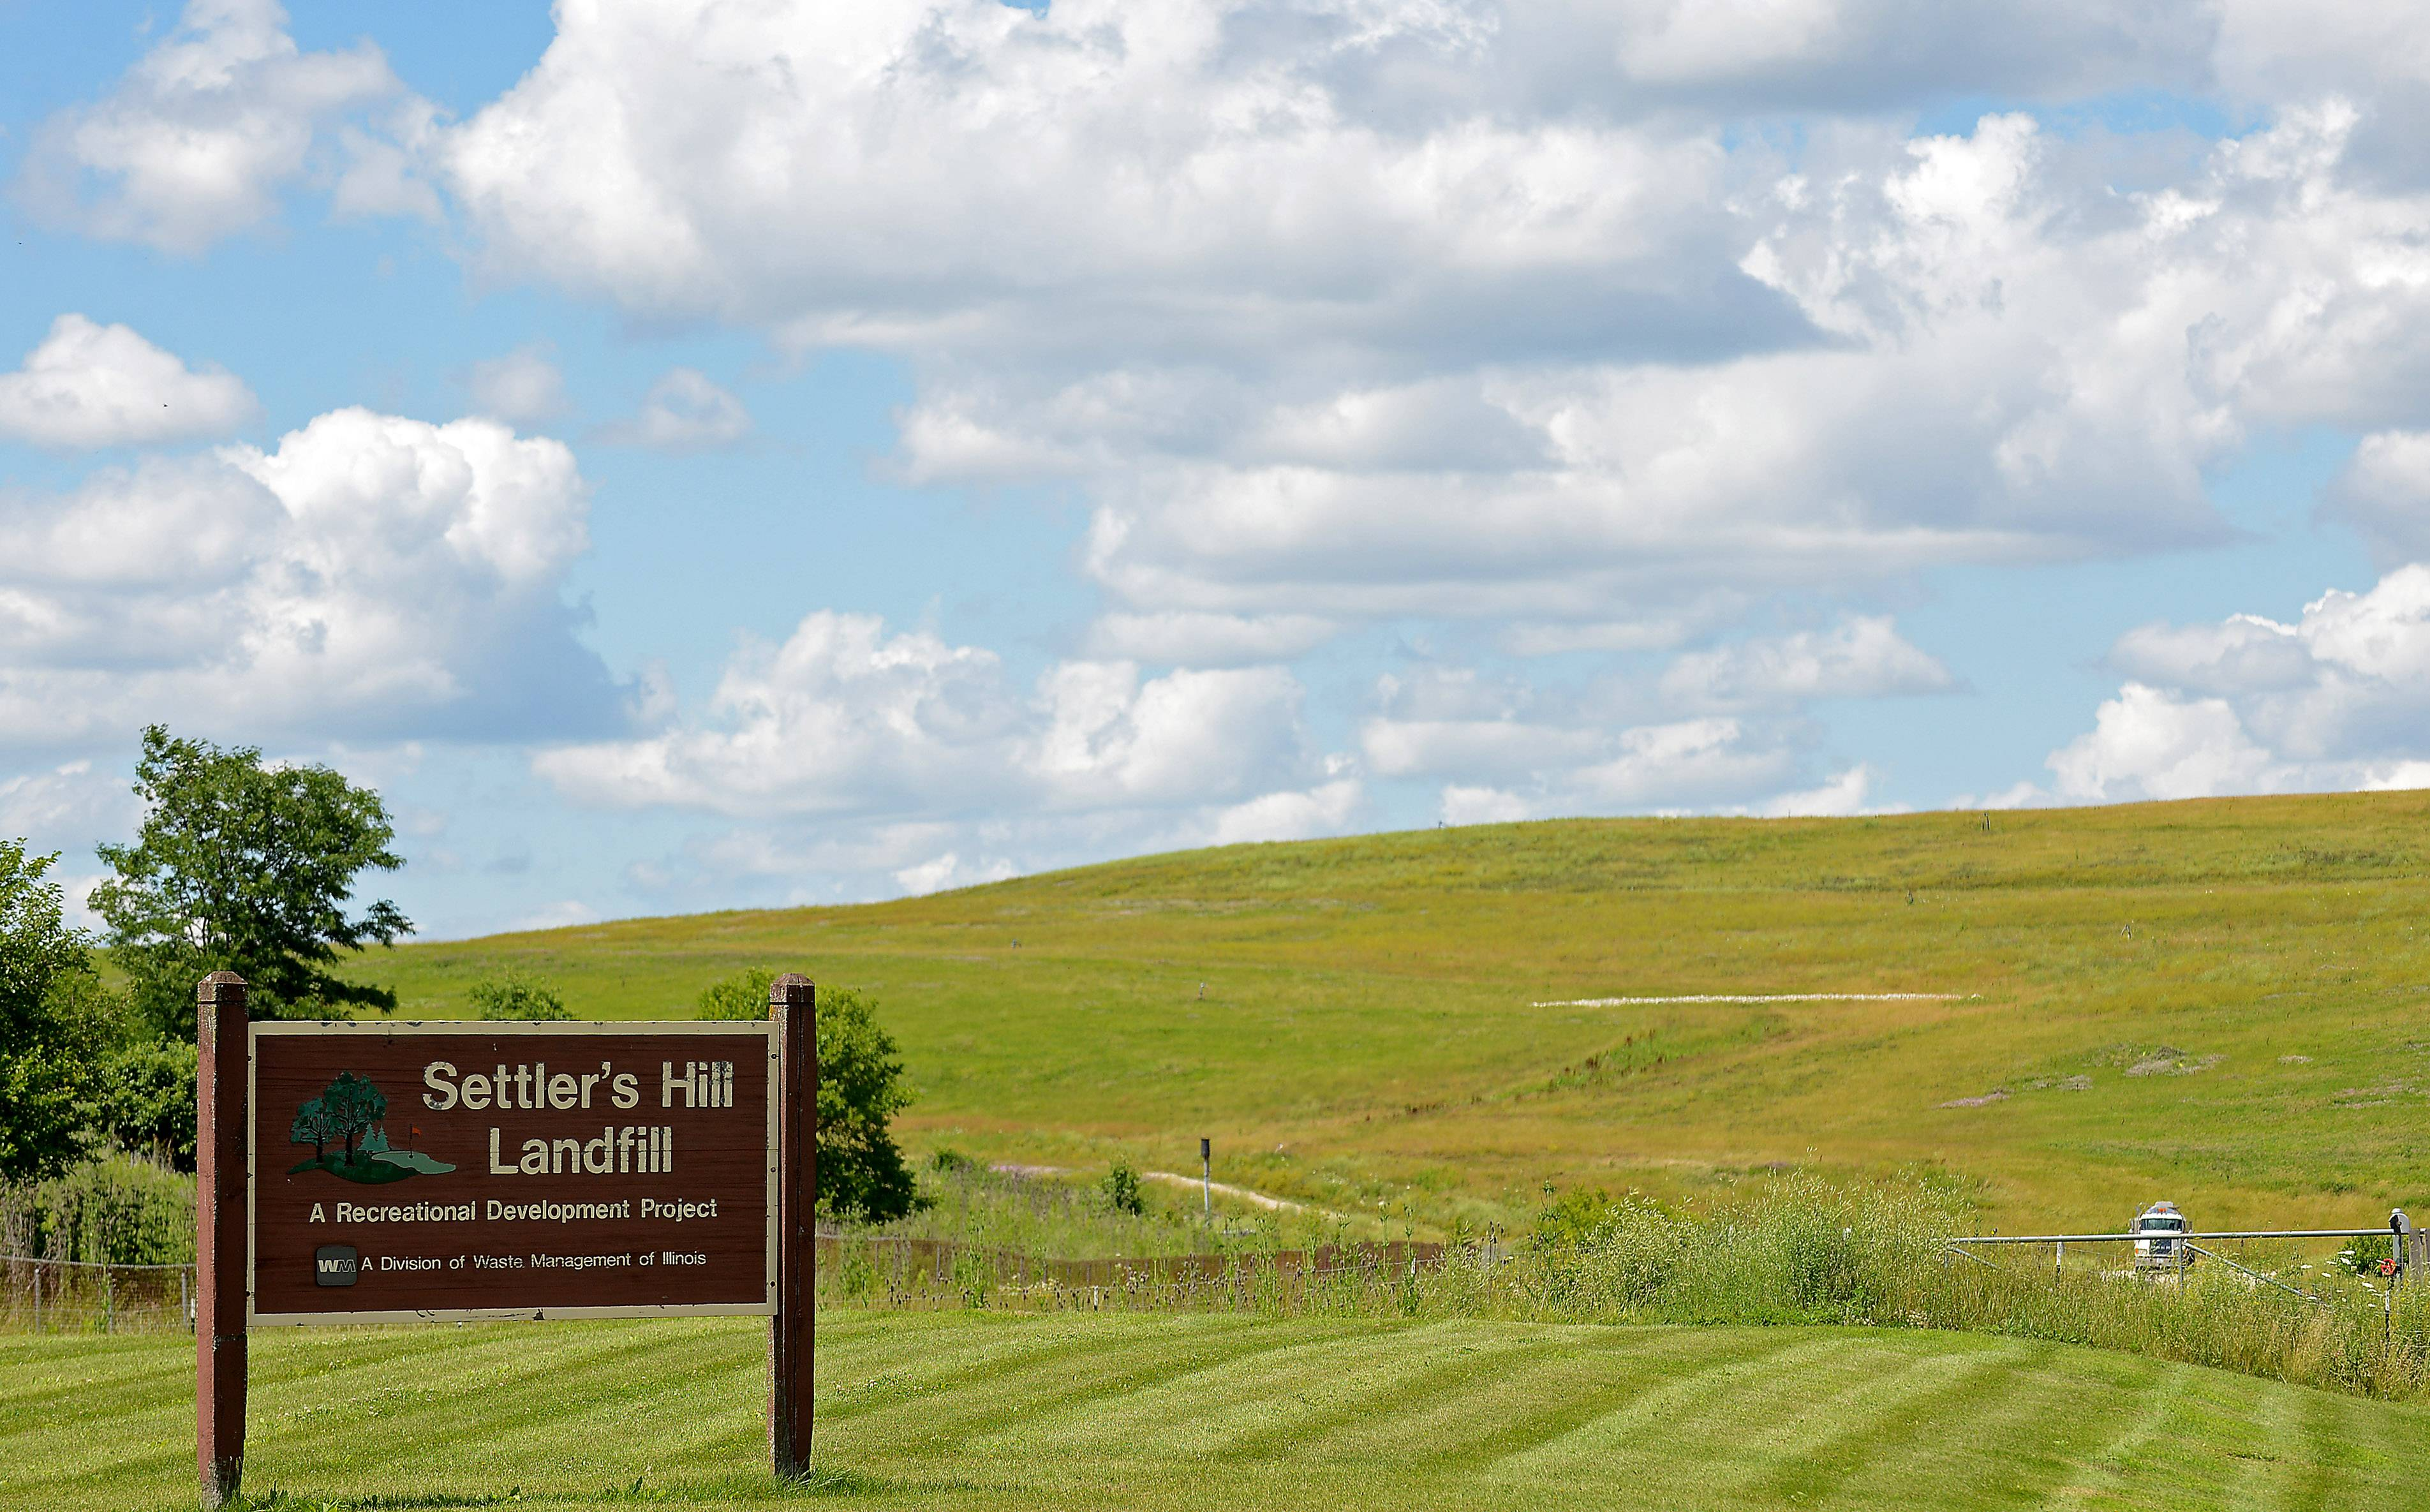 The Kane County Forest Preserve District and Waste Management now share operation of the former Settler's Hill landfill in Geneva. The site could become home to a new cross-country facility with construction starting this fall.